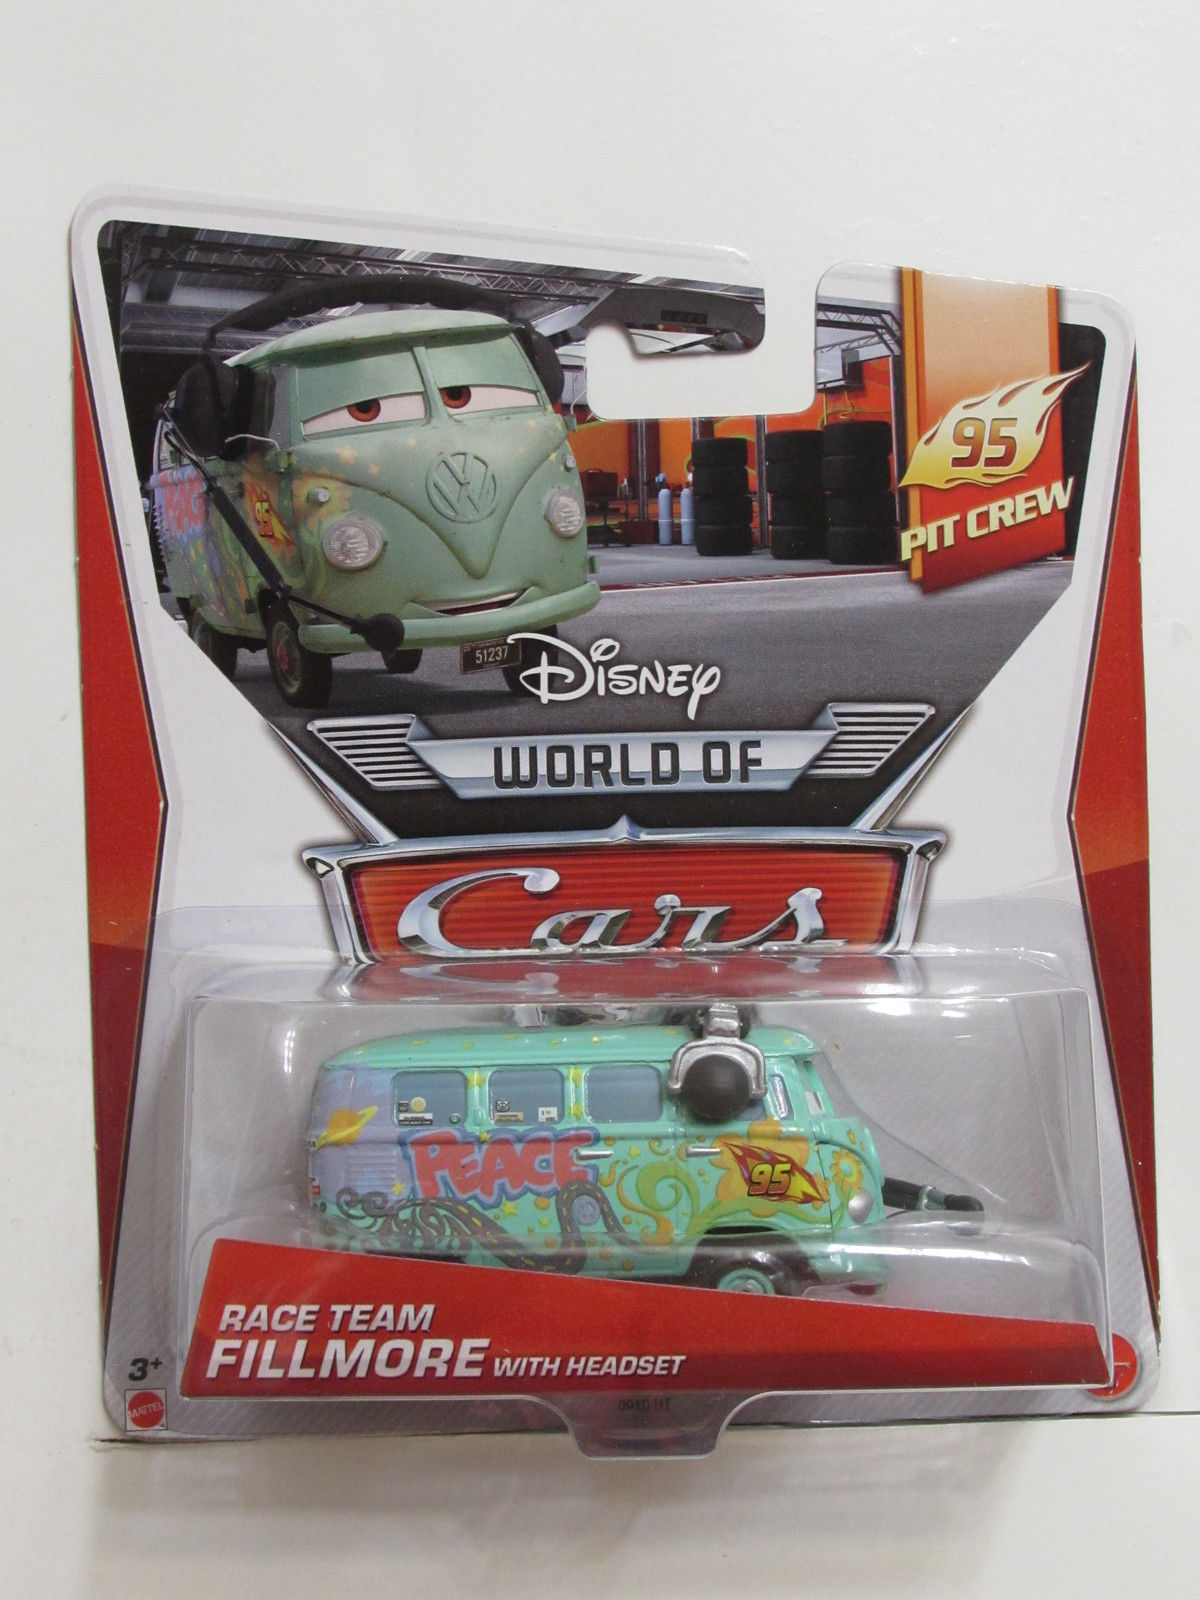 DISNEY PIXAR CARS PIT CREW RACE TEAM FILLMORE WITH HEADSET